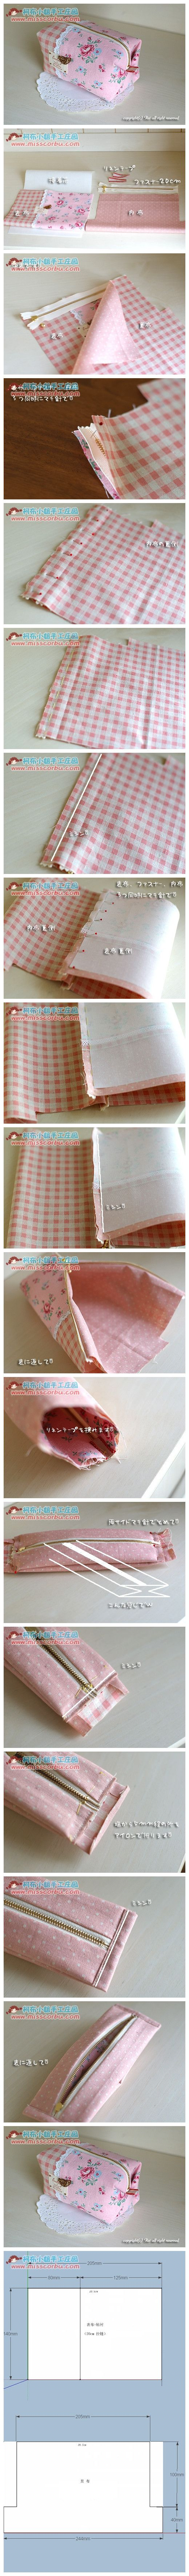 Tutorial step-by step for a small pouch bag